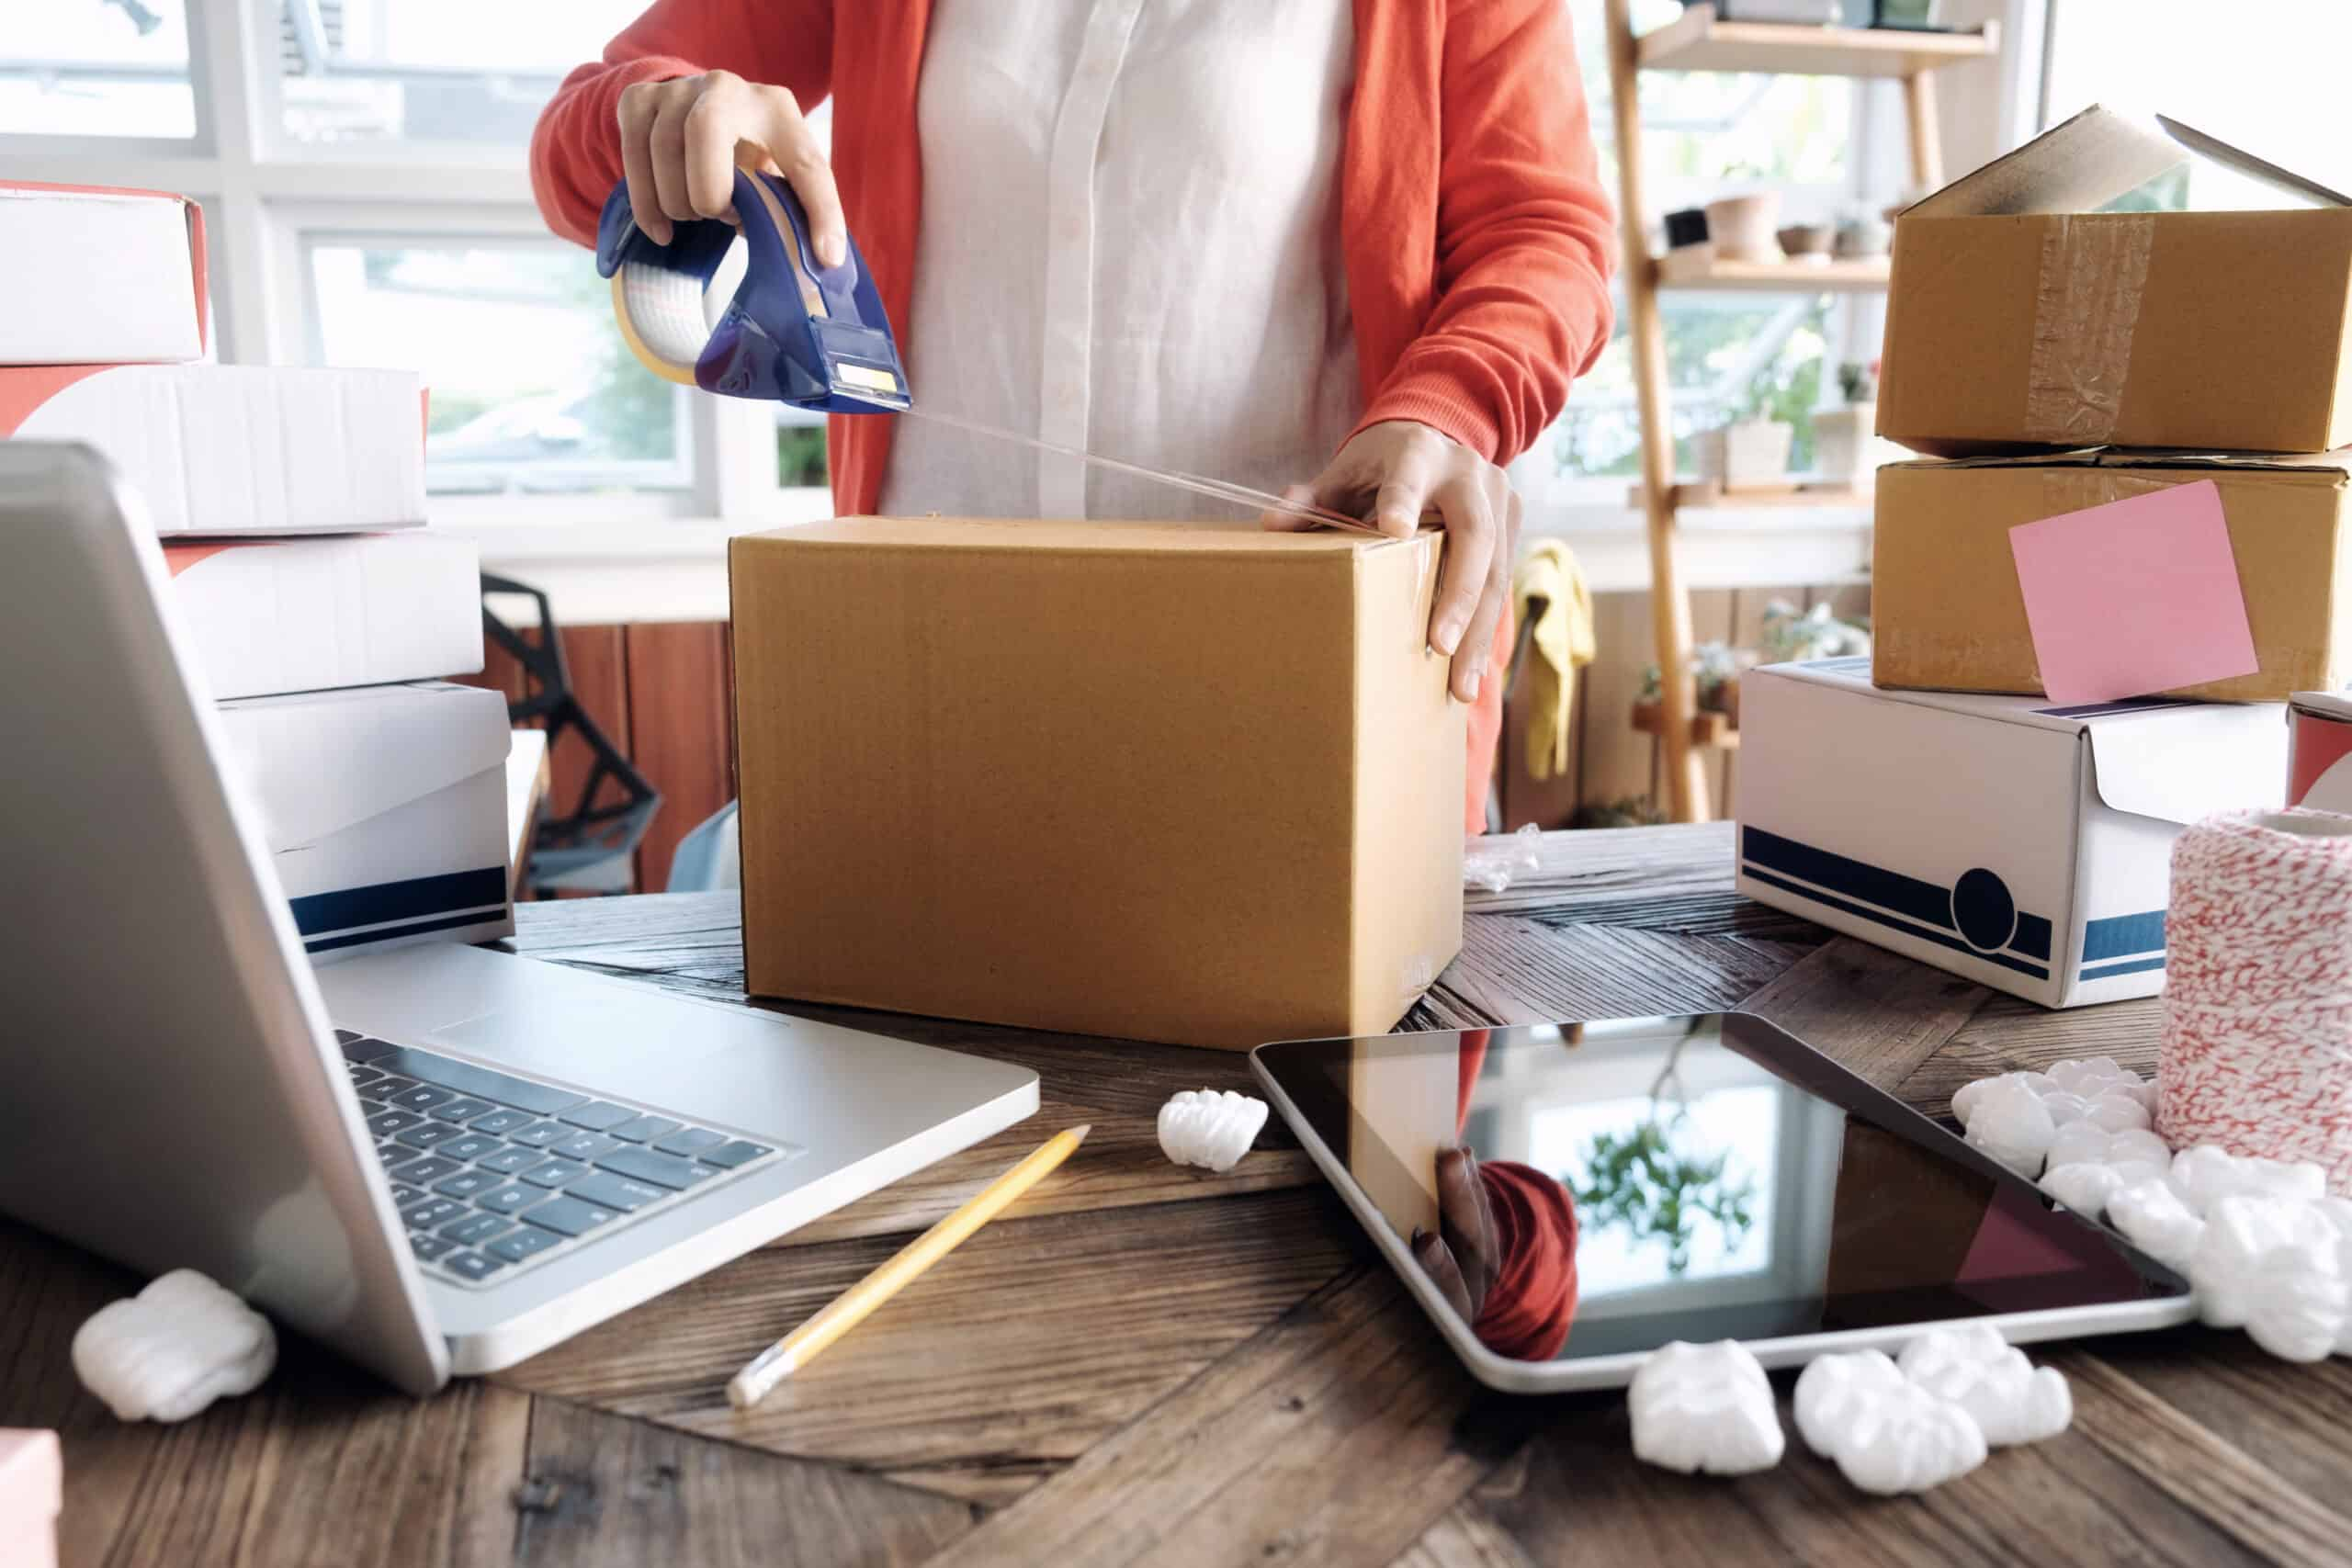 Young startup entrepreneur small business owner working at home, packaging and delivering items for Amazon FBA in preparation for Black Friday